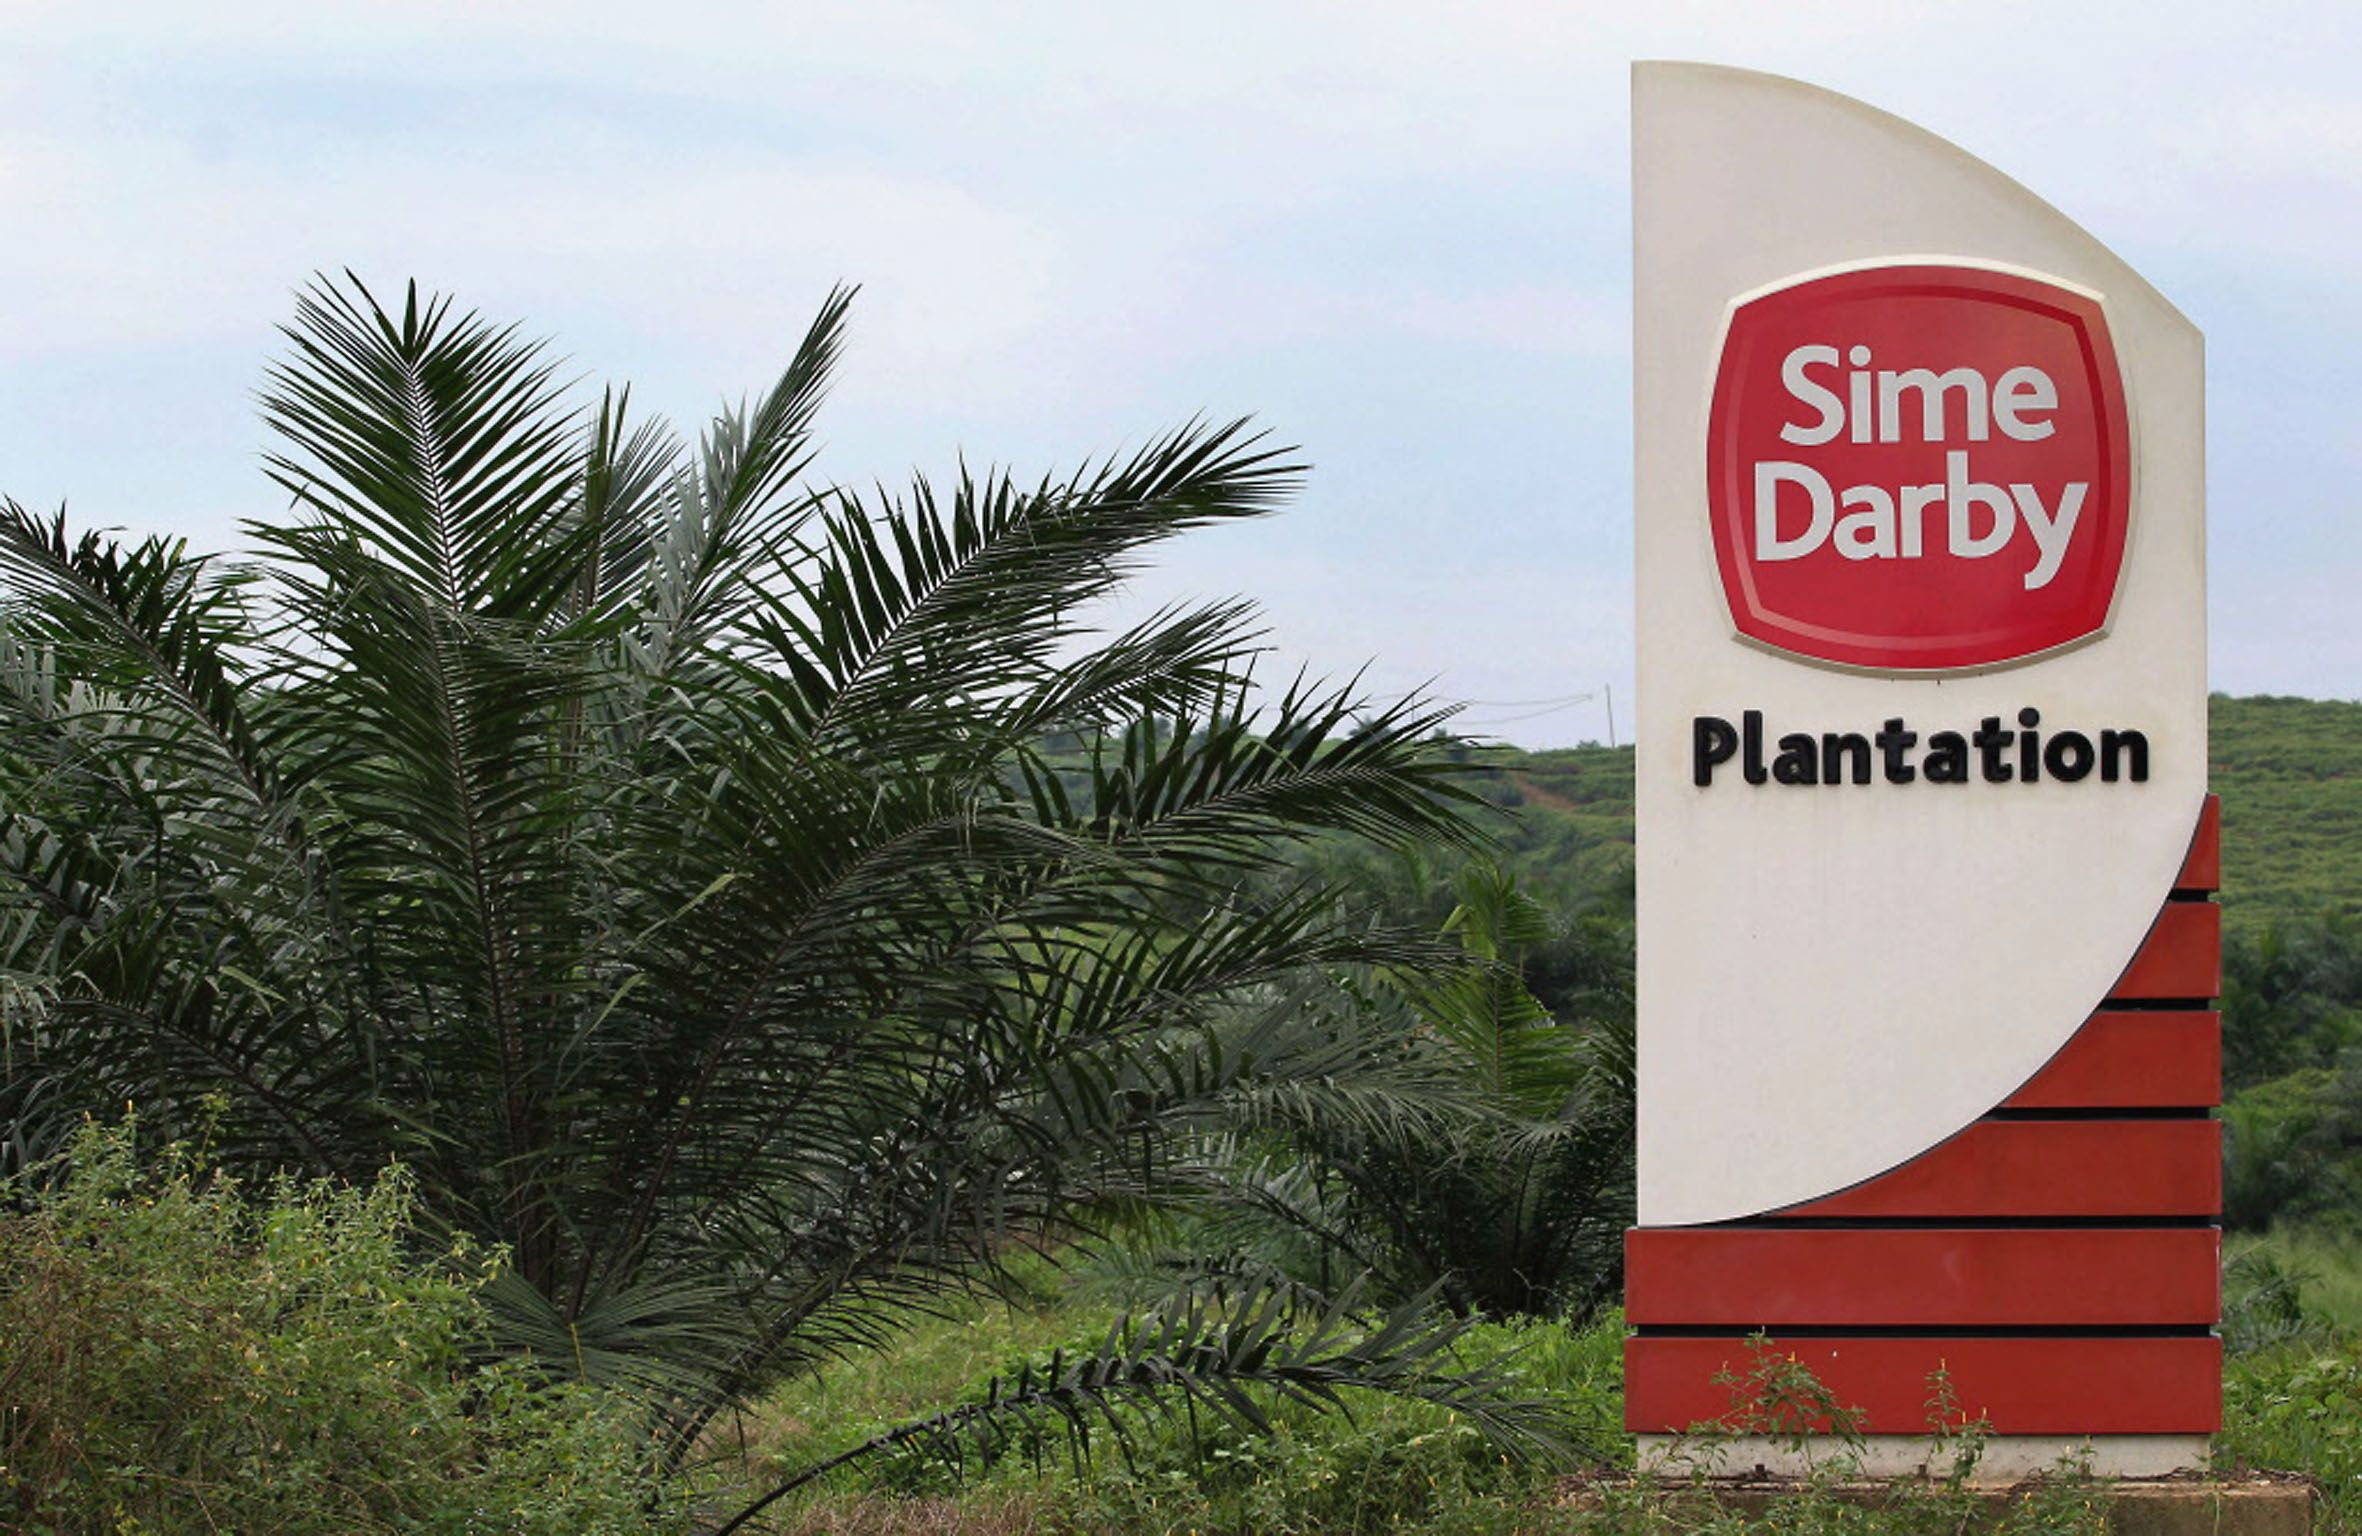 sime darby urged to make report The report should be privy to everyone as it is a big case, umno youth chief khairy jamaluddin said yesterday the rembau mp said the report should be released it will not make a difference to the case as ypb (yayasan pelaburan bumiputra), its ultimate owner, would have received the report.